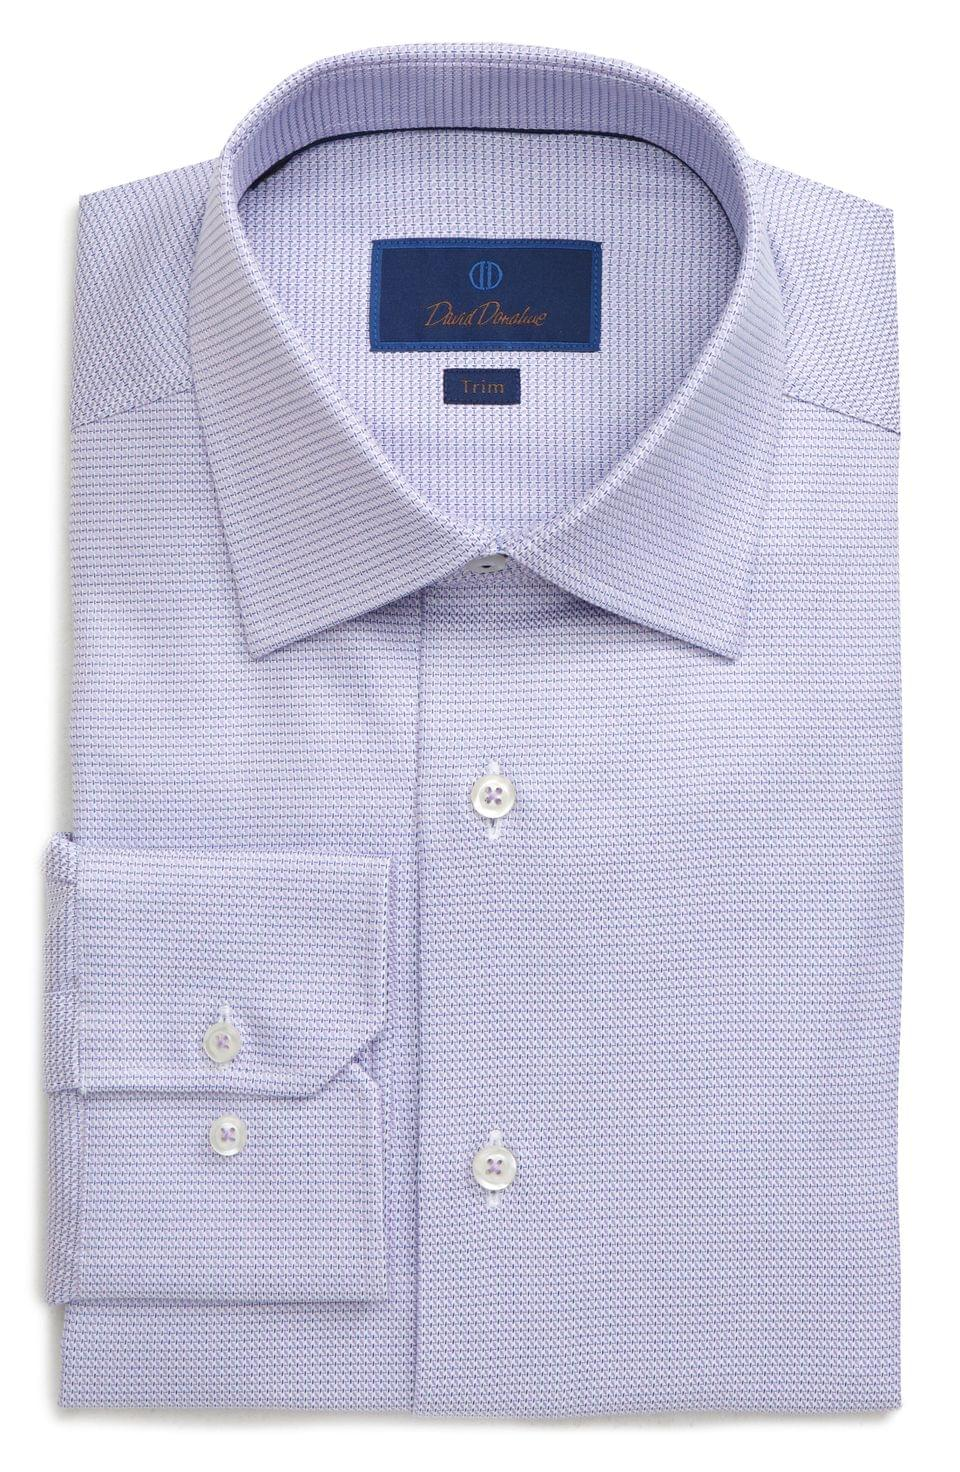 Men's David Donahue Regular Fit Dress Shirt